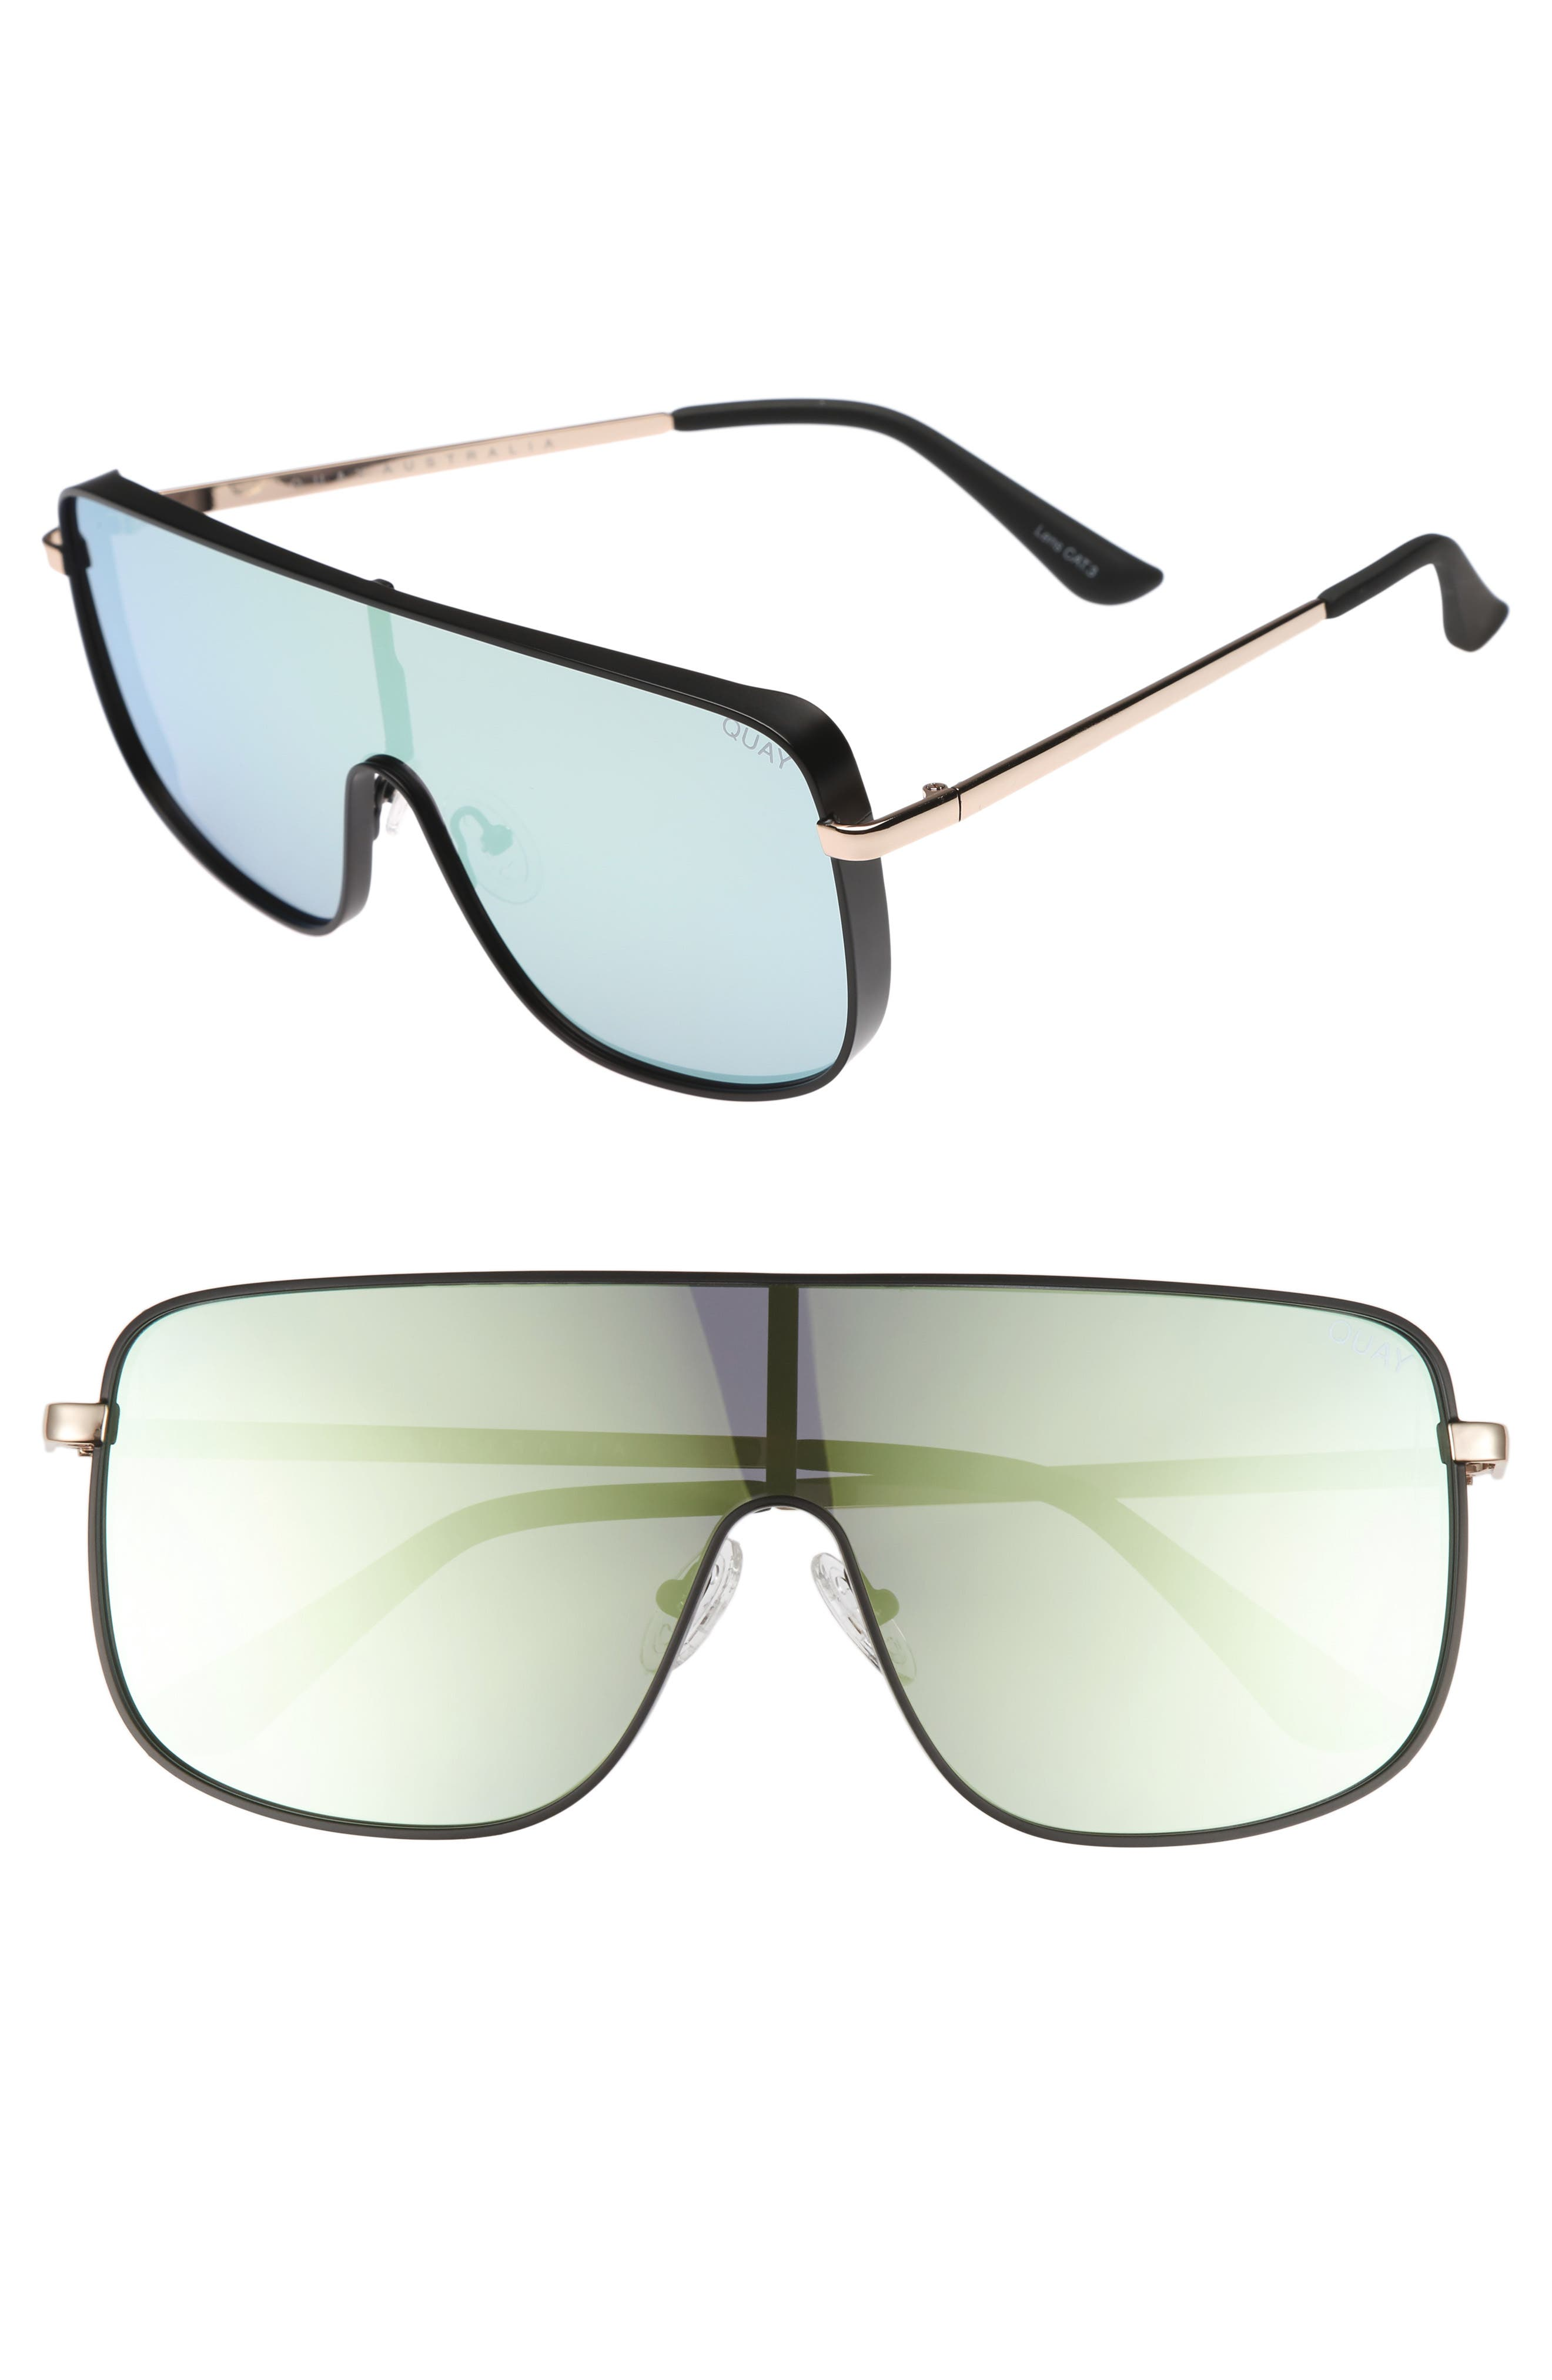 Unbothered 68mm Shield Sunglasses,                         Main,                         color, 001